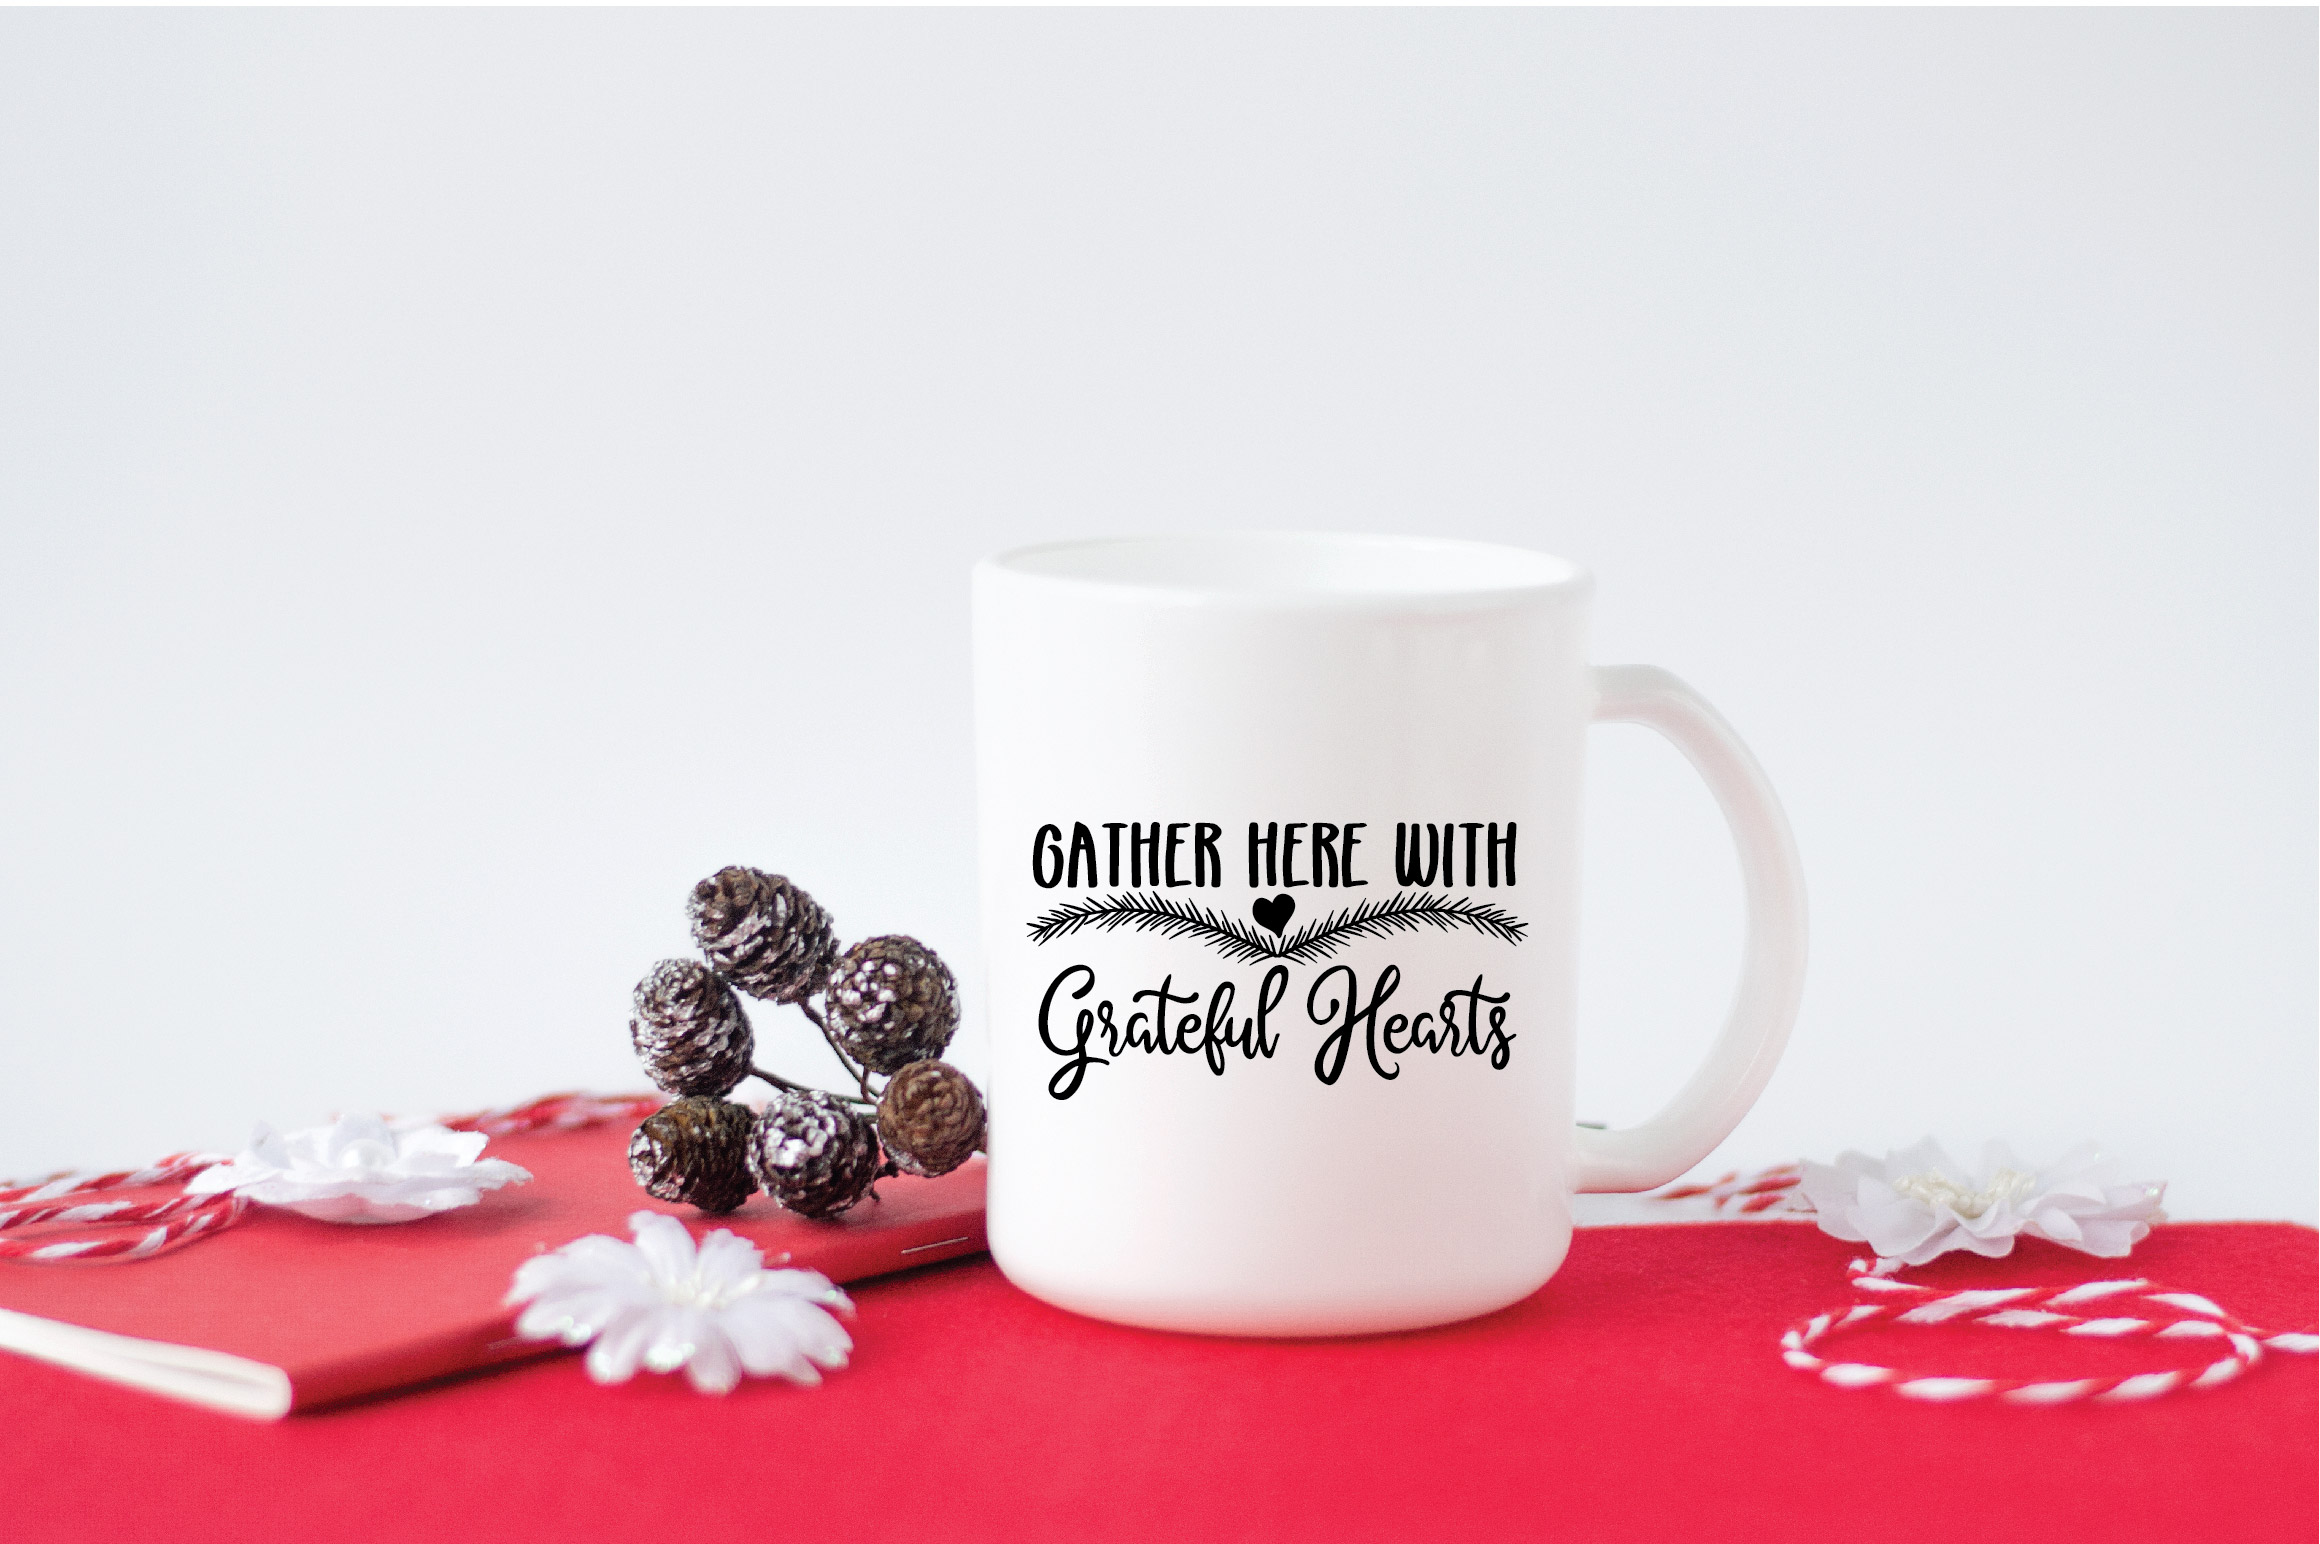 Christmas SVG Cut File -Gather Here with Grateful Hearts SVG example image 5